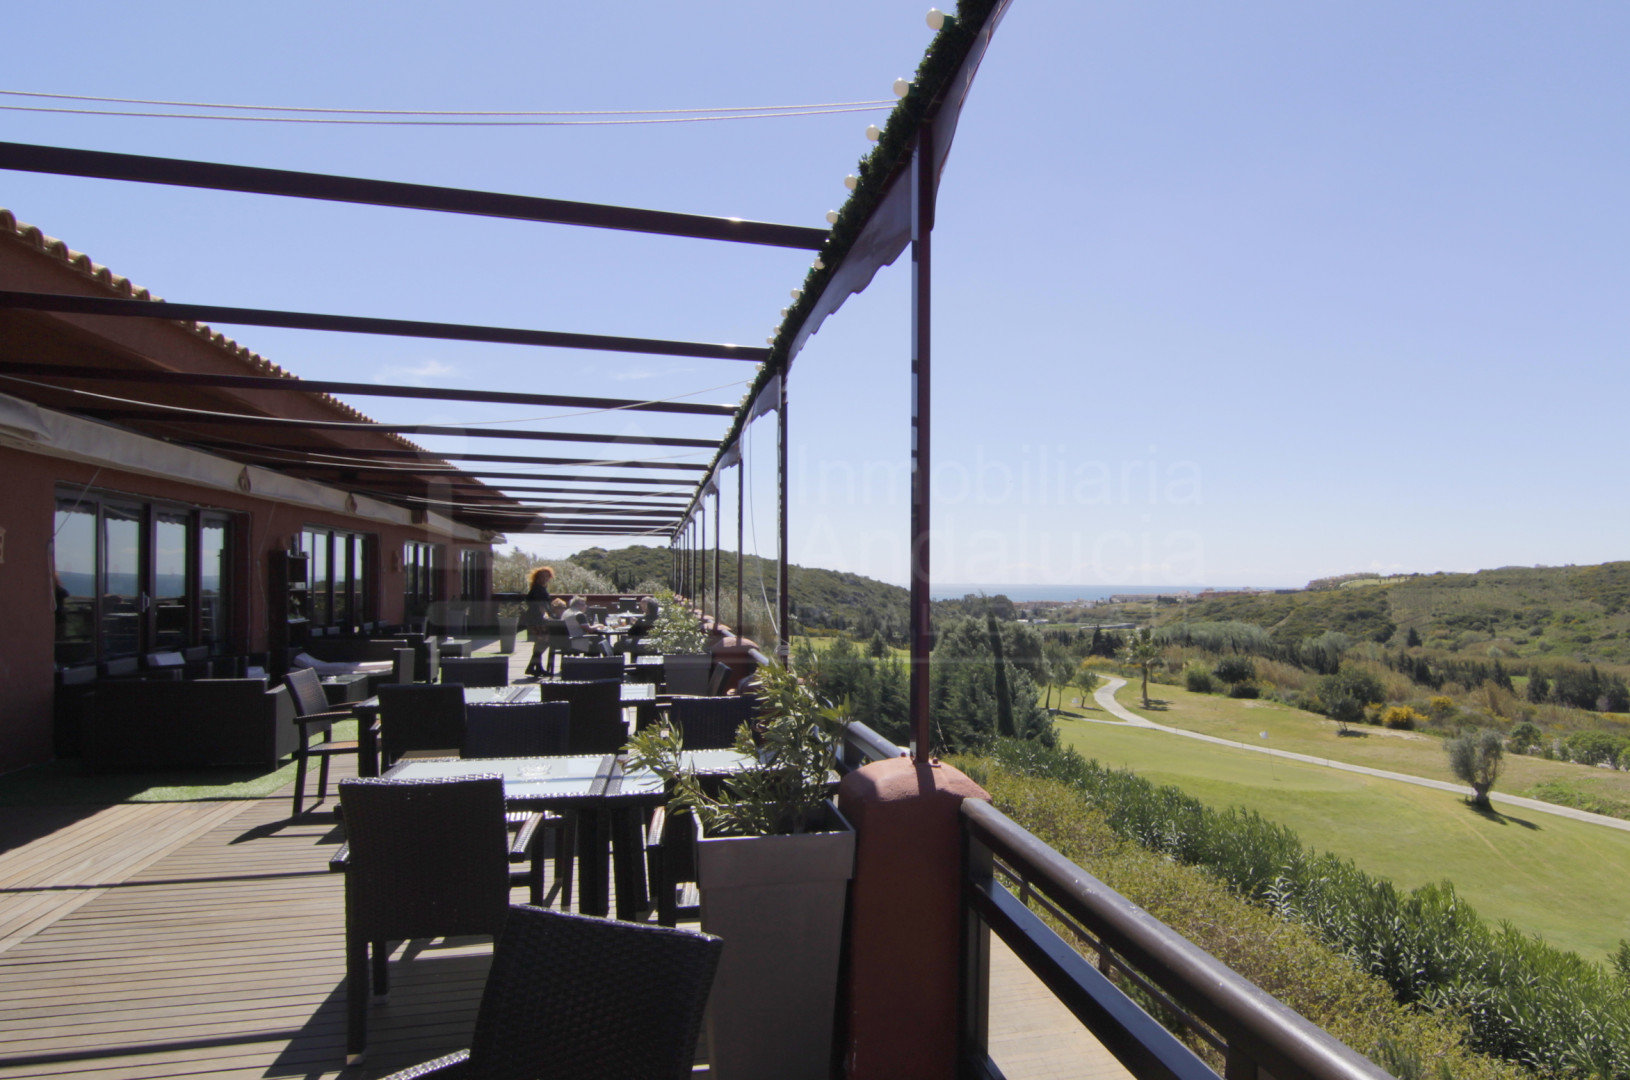 1.000m2 golf villa plot for sale with permission to build in Casares